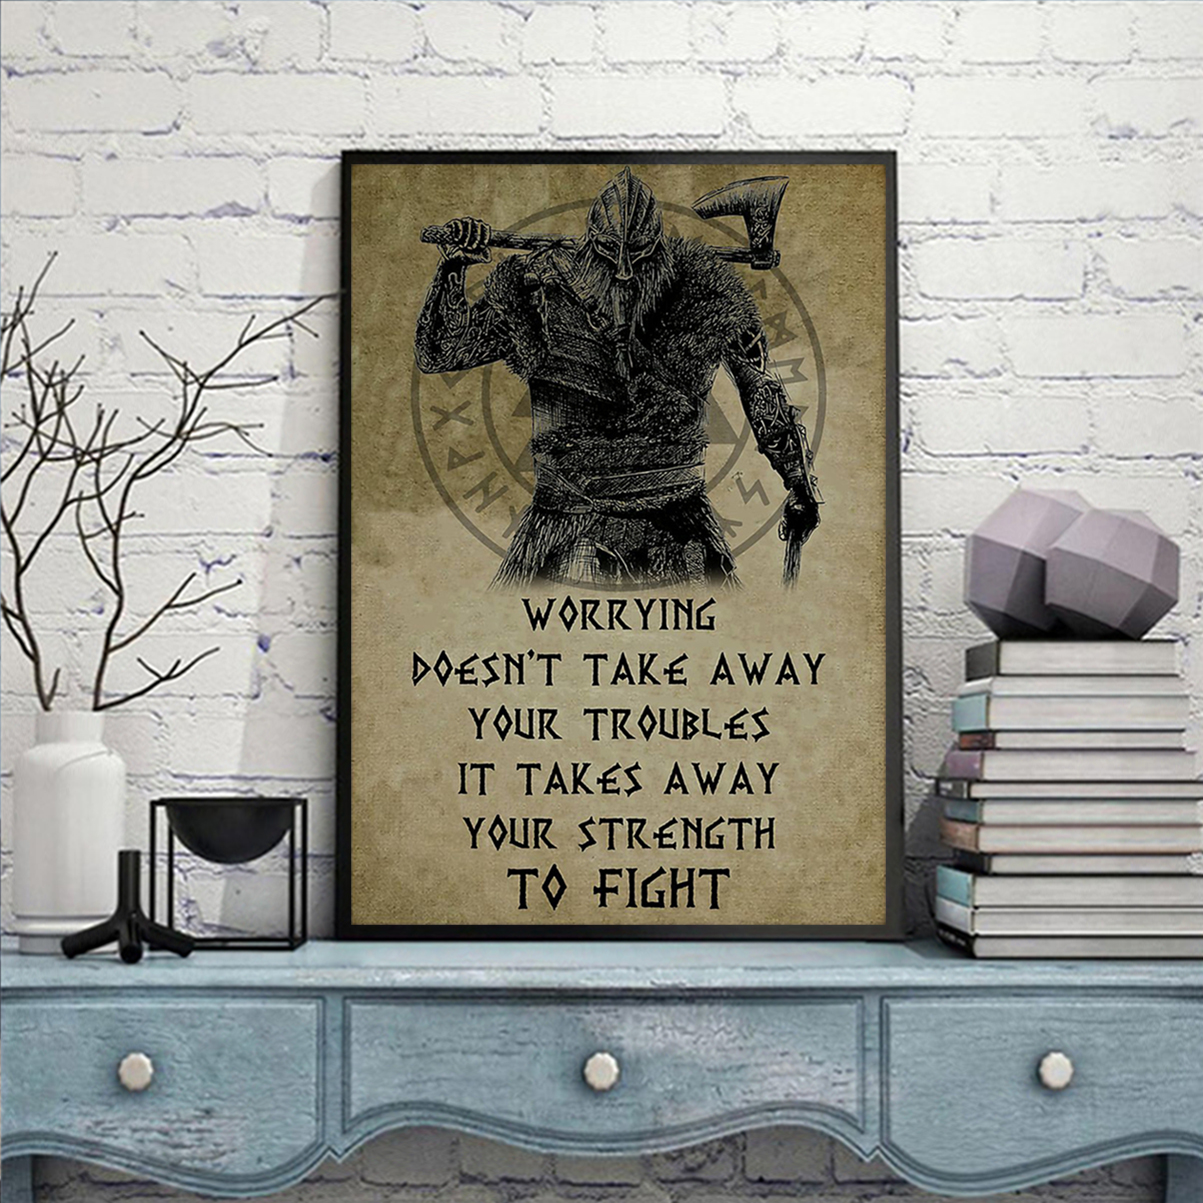 Viking worrying doesn't take away your troubles poster A2